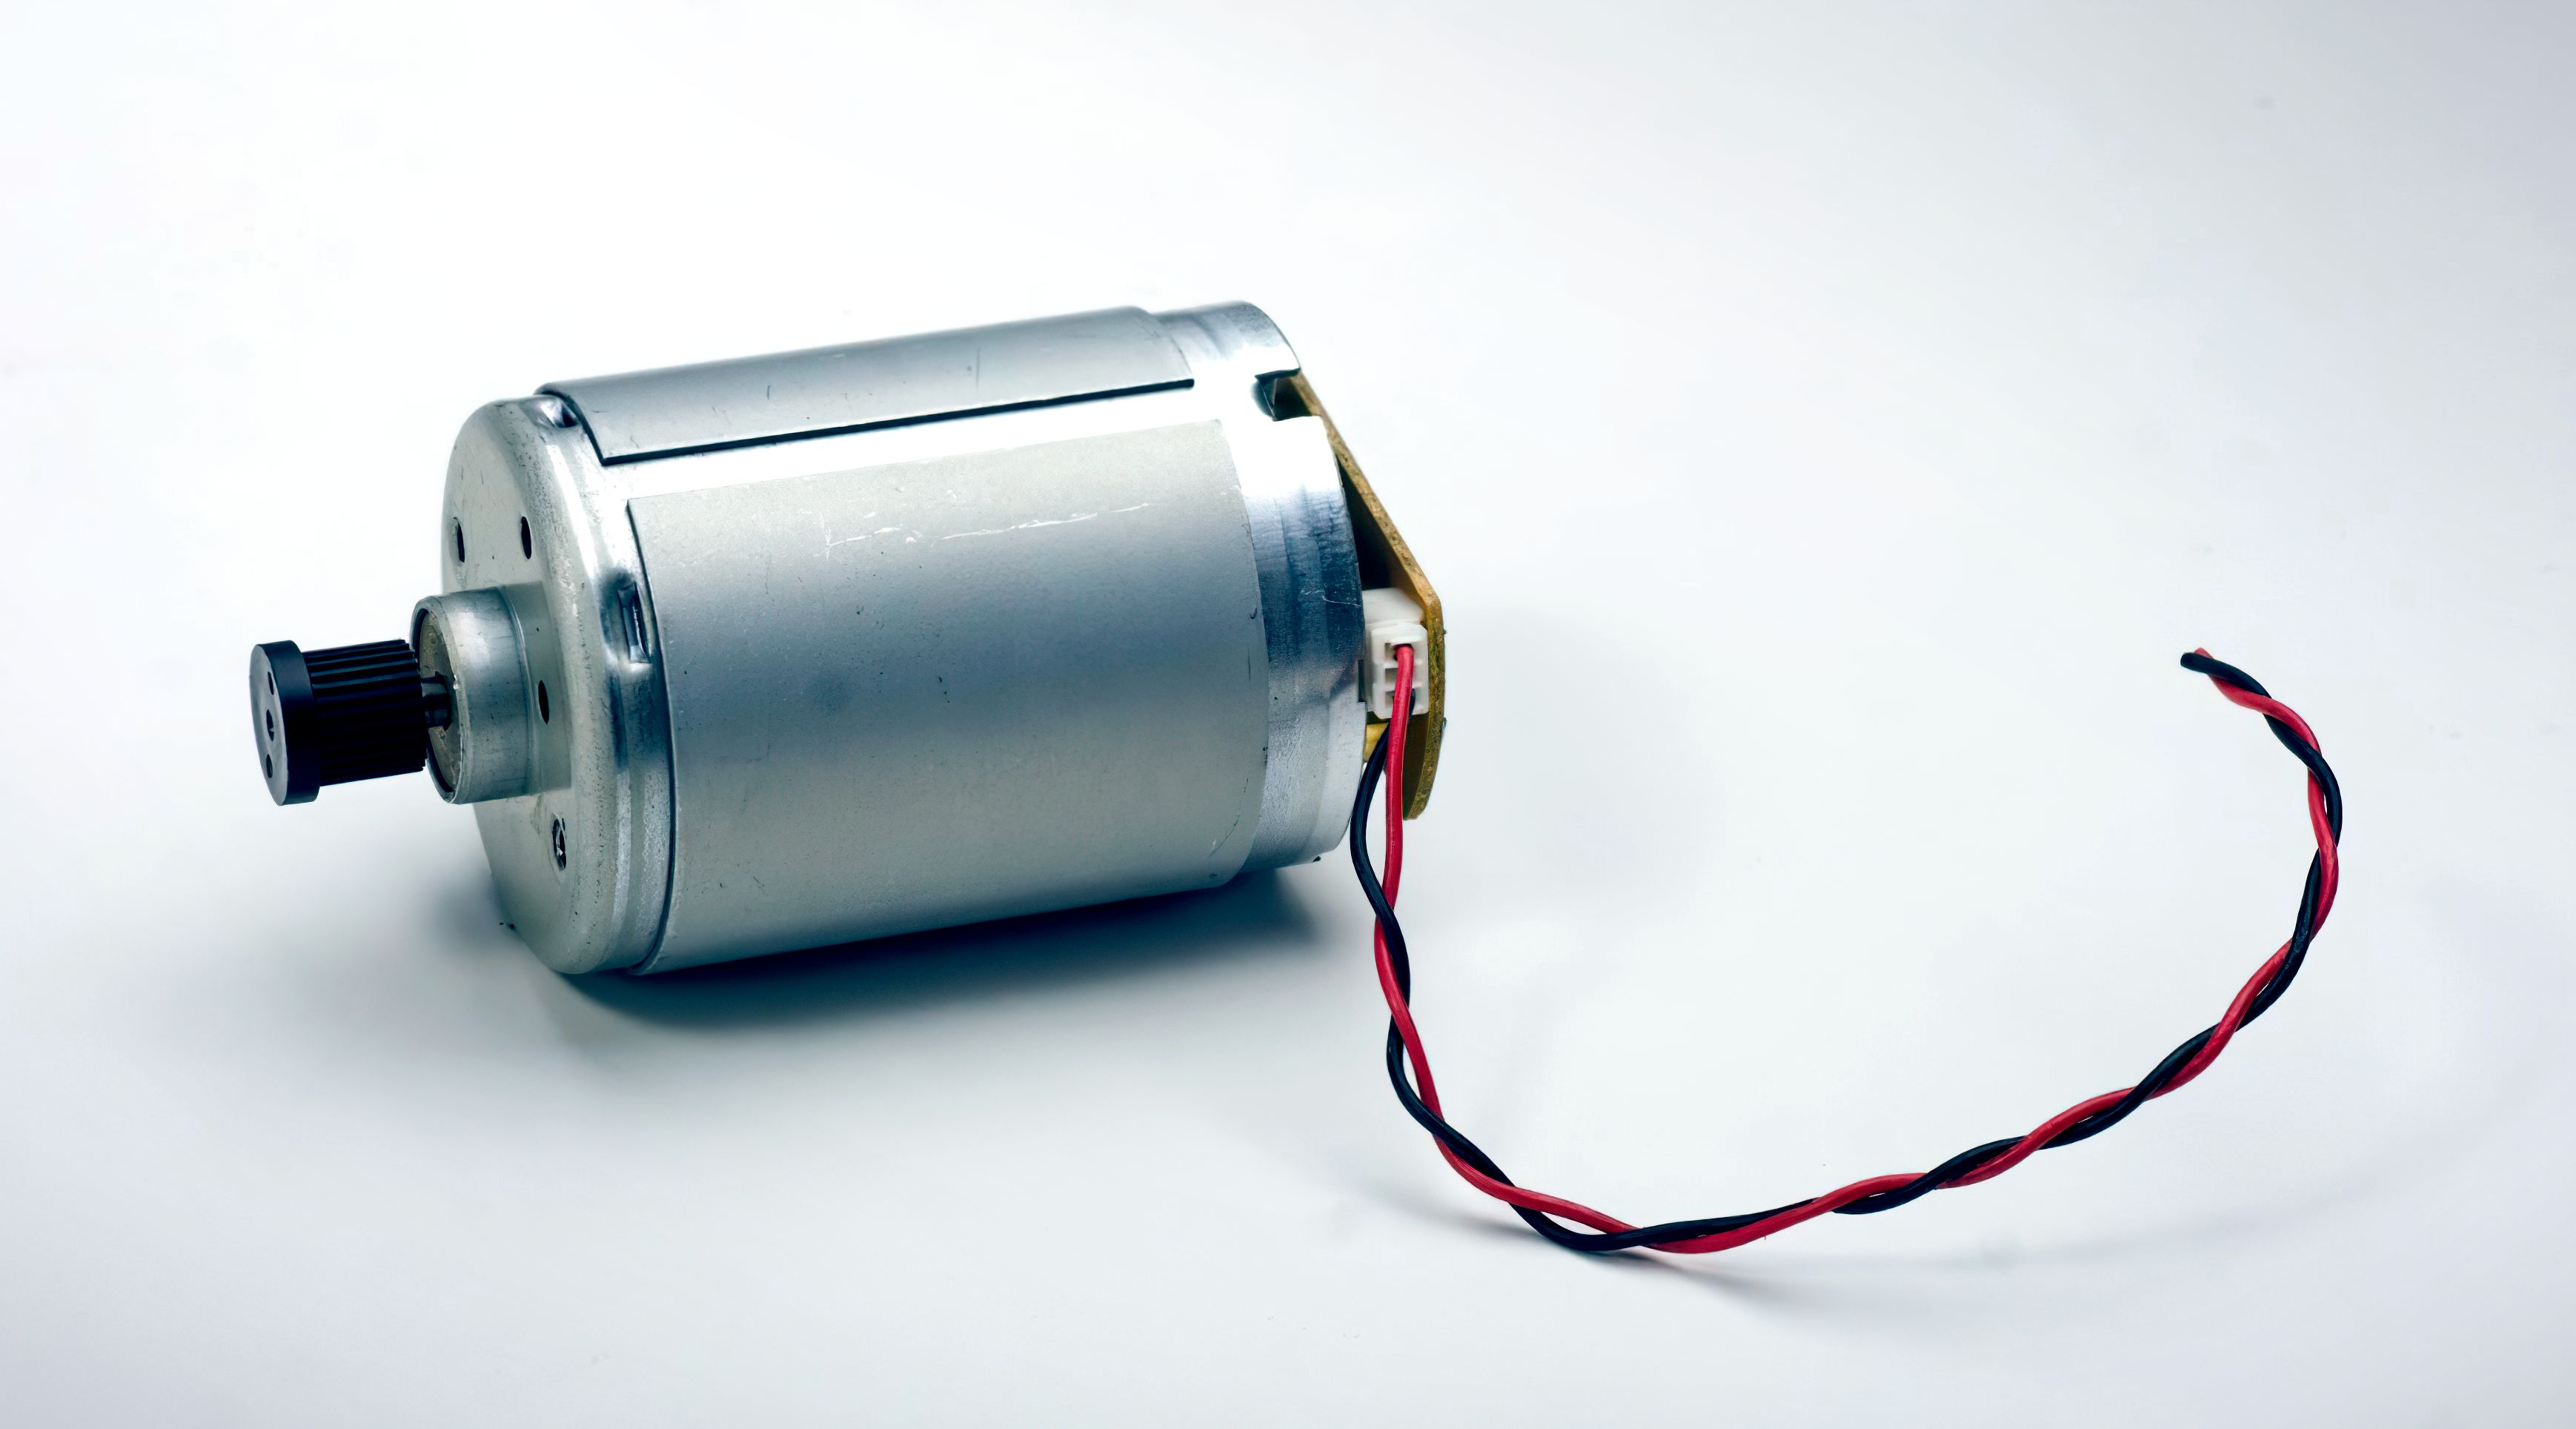 /building-a-brushed-dc-motor-controller-an-overview-ha3r3397 feature image